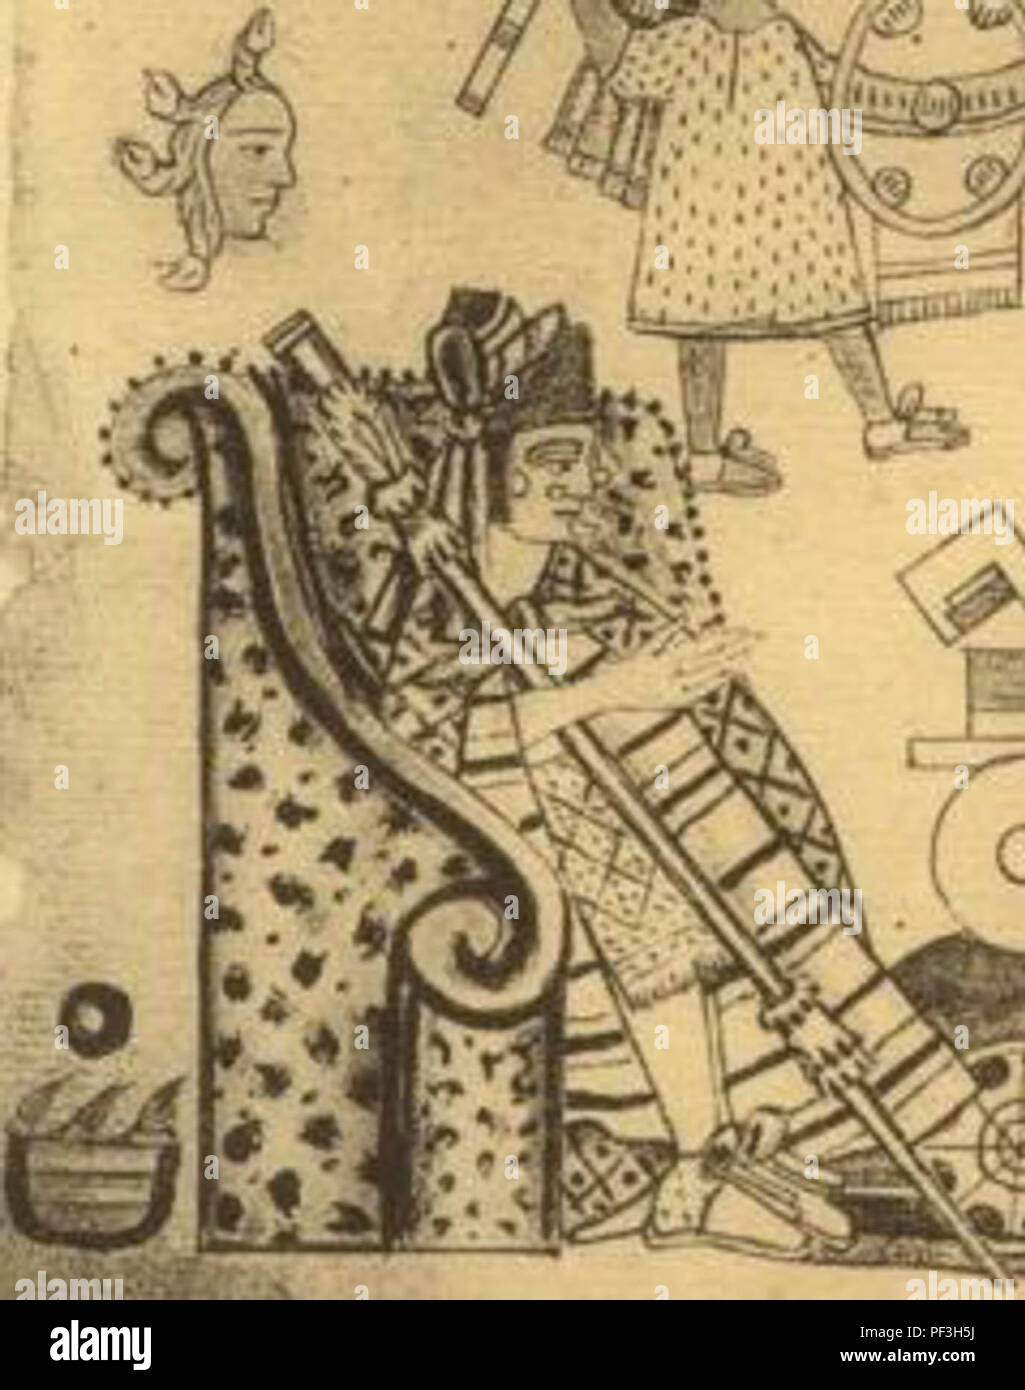 Tlatoāni Axayacatl, Aztec emperor from 1469 to 1481, under whom the Kingdom  of Calixtlahuaca was conquered and annexed by the Aztec empire.